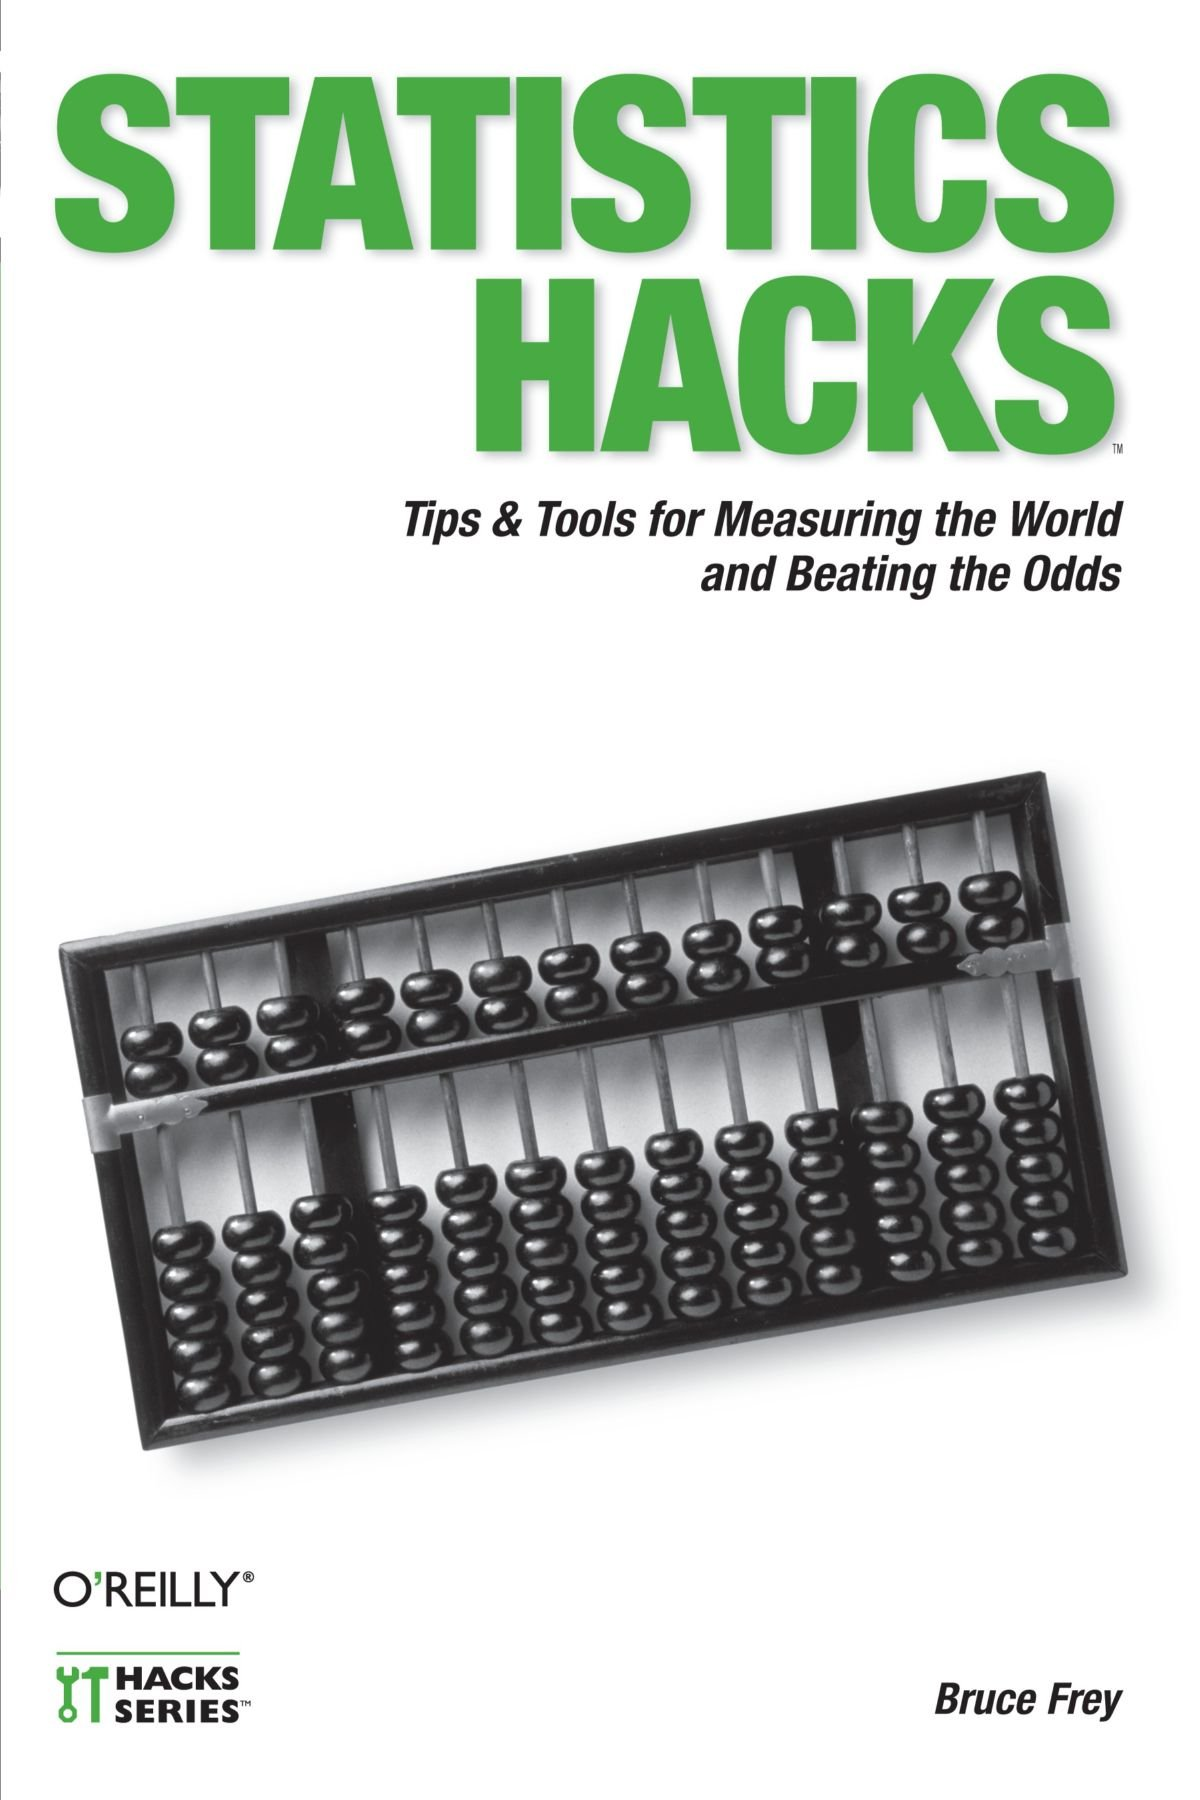 Statistics Hacks: Tips & Tools for Measuring the World and Beating the Odds:  Amazon.co.uk: Bruce Frey: 9780596101640: Books